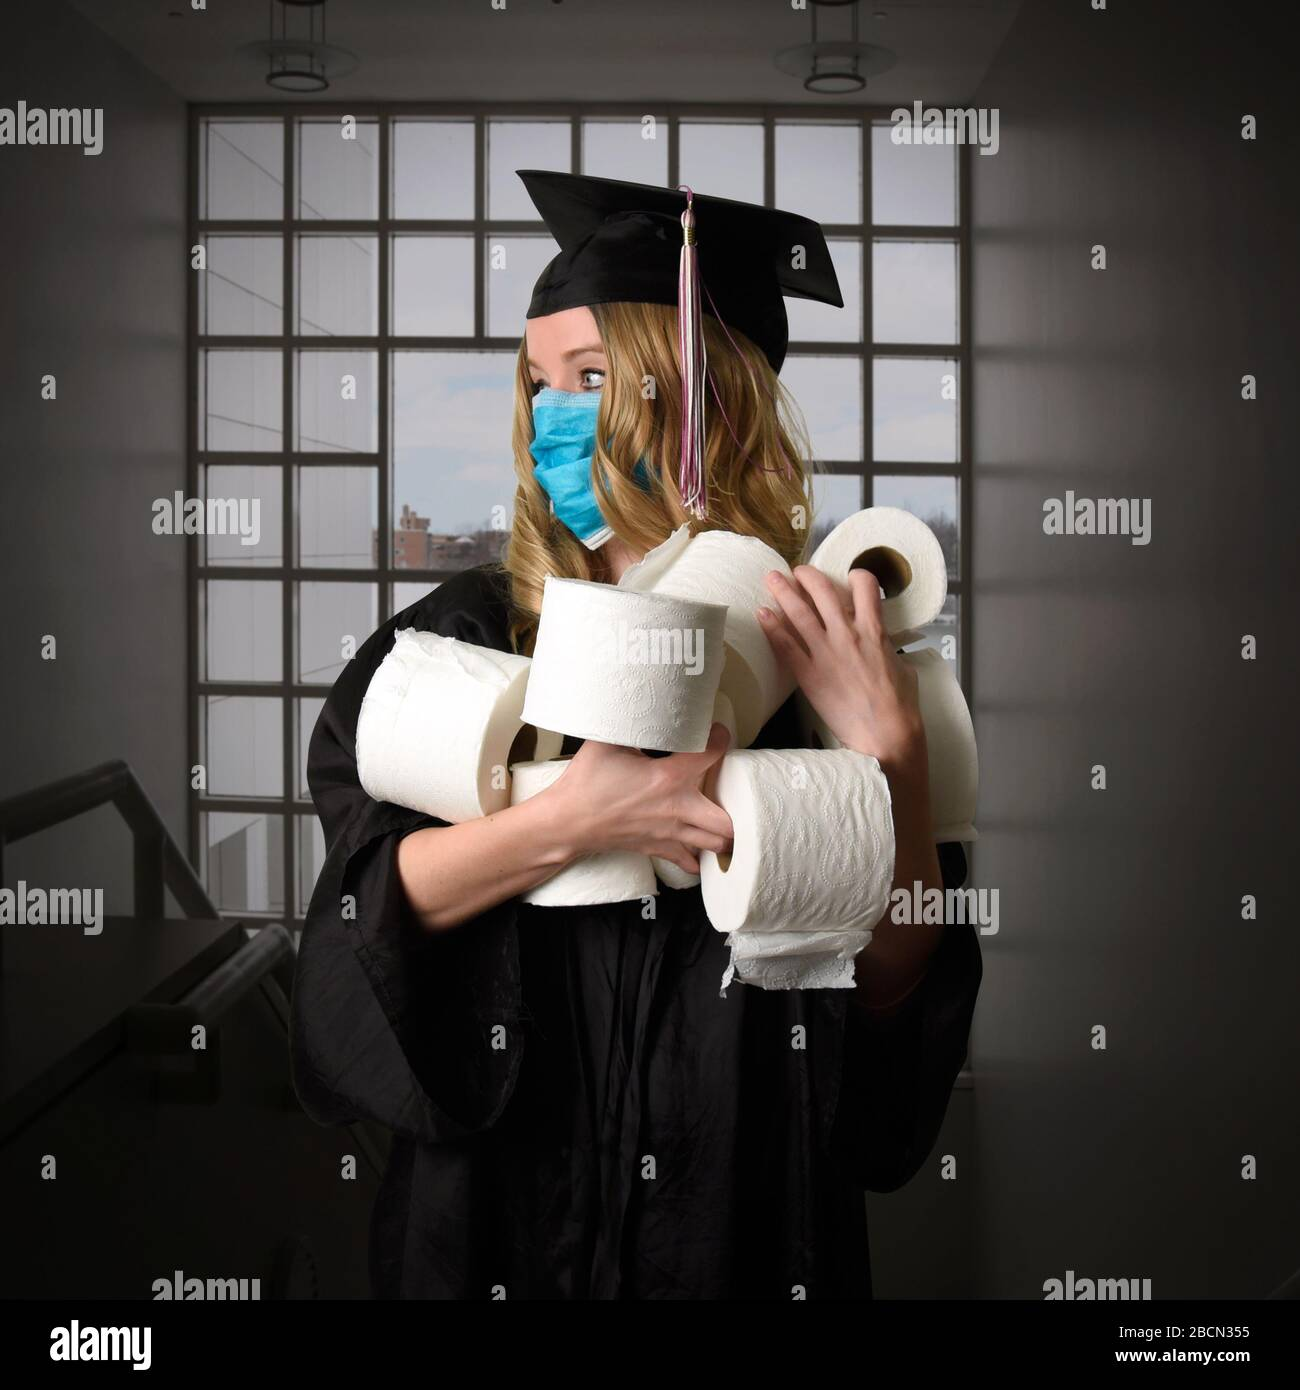 A senior graduate from the class of 2020 is graduating inside holding toilet paper as a humorous portrait concept. Stock Photo